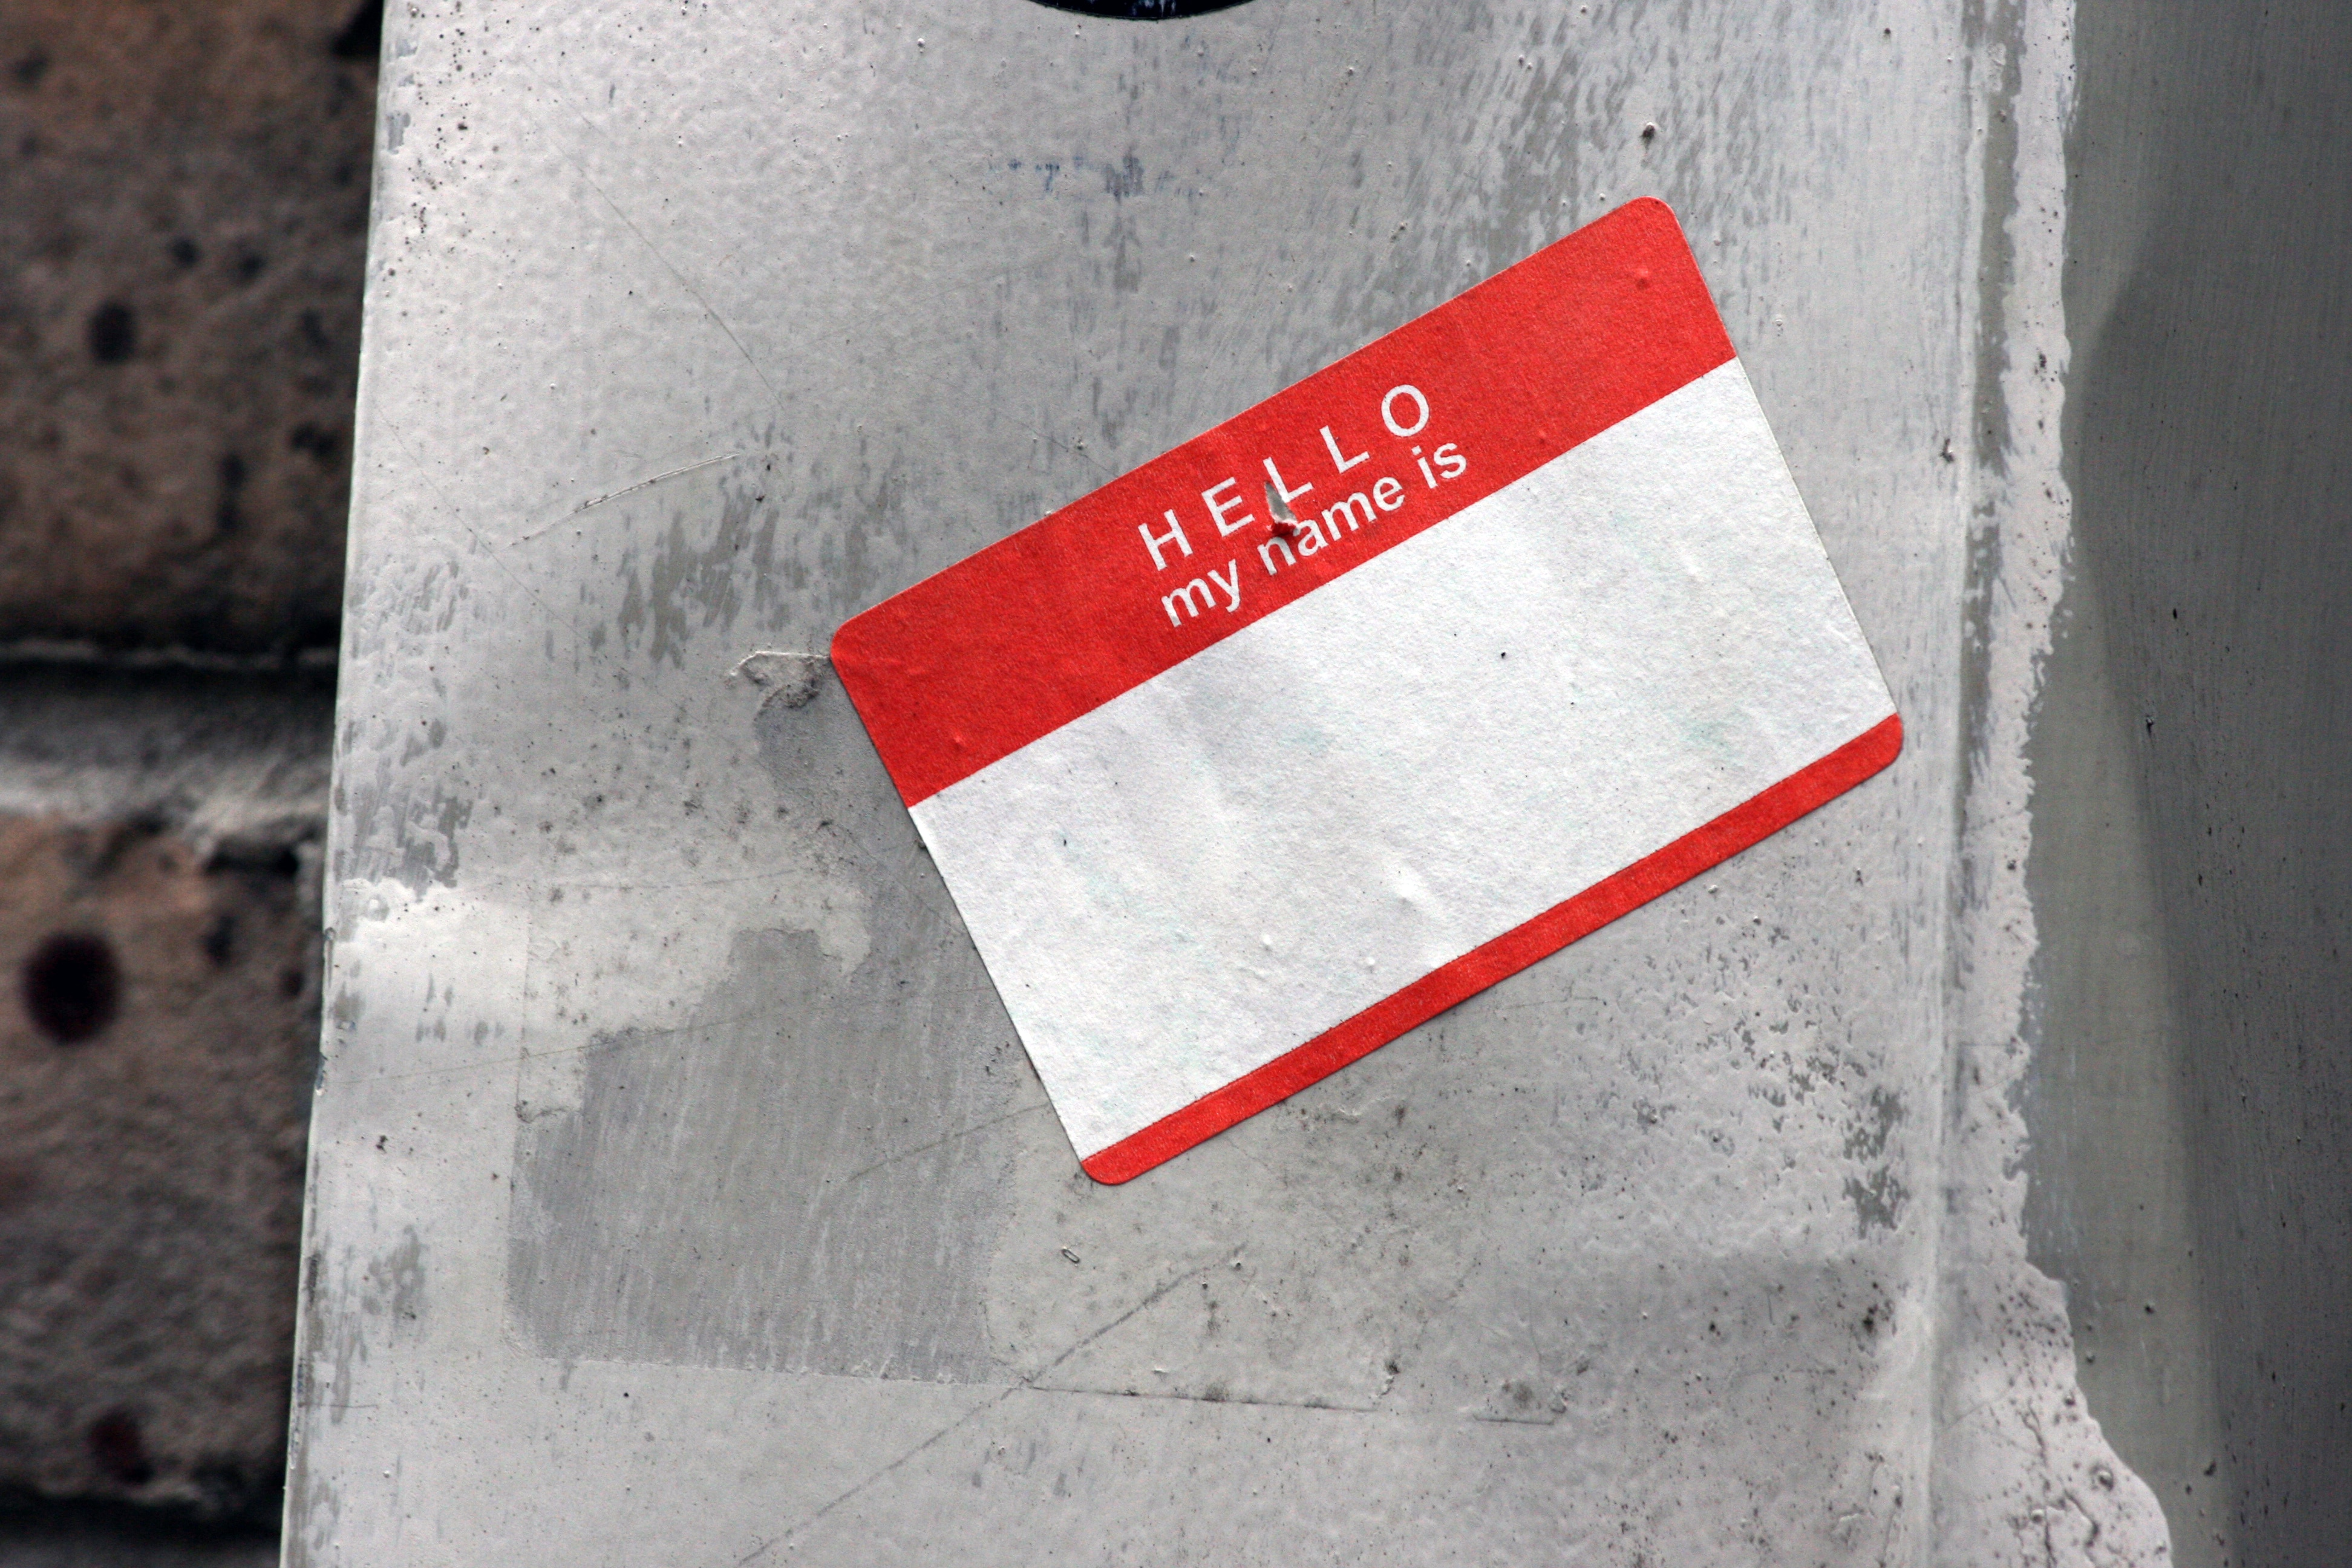 A 'hello my name is...' label stuck to a wall